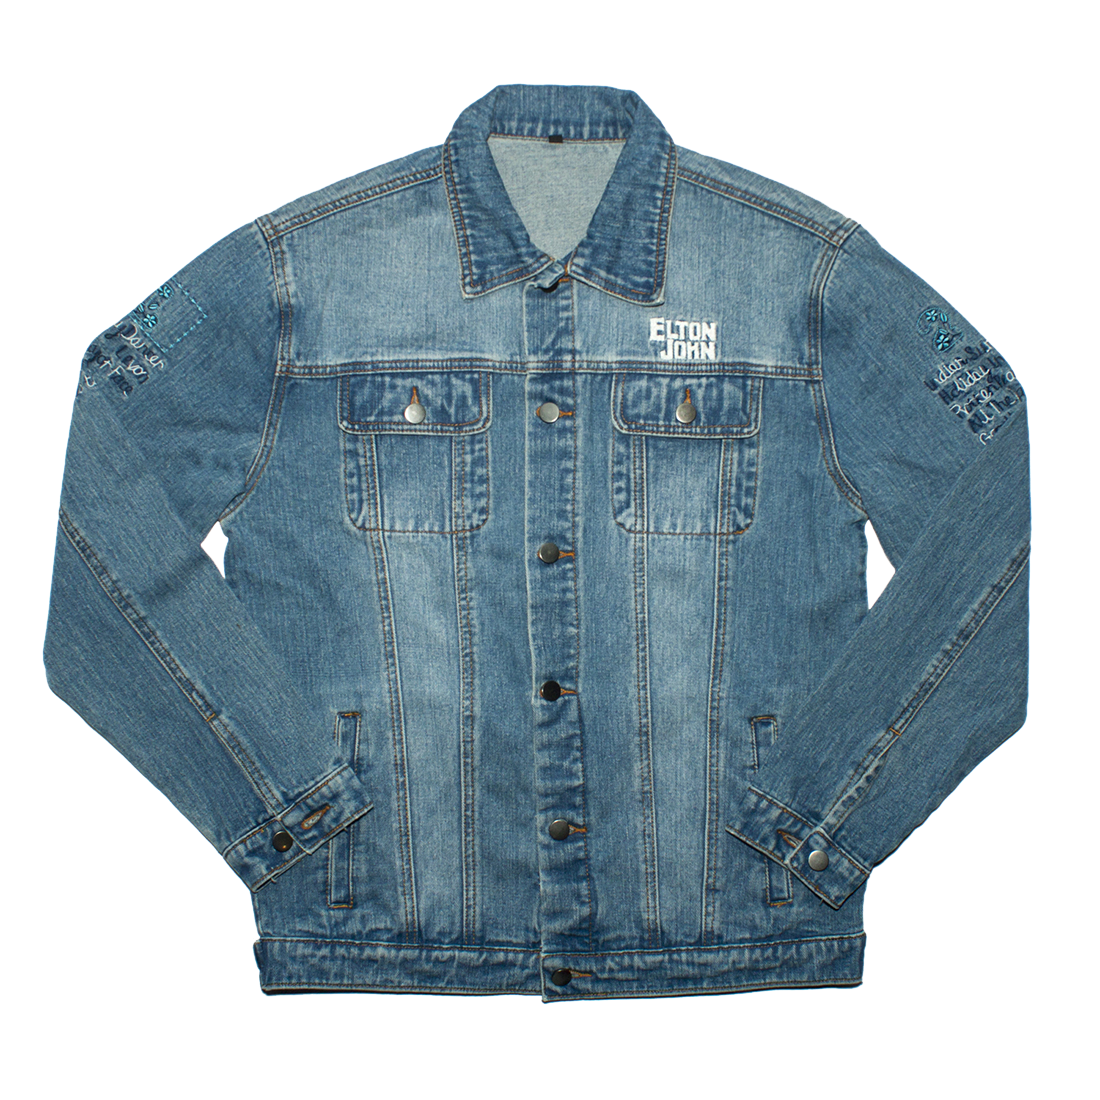 Elton John: MATW Denim Jacket - S